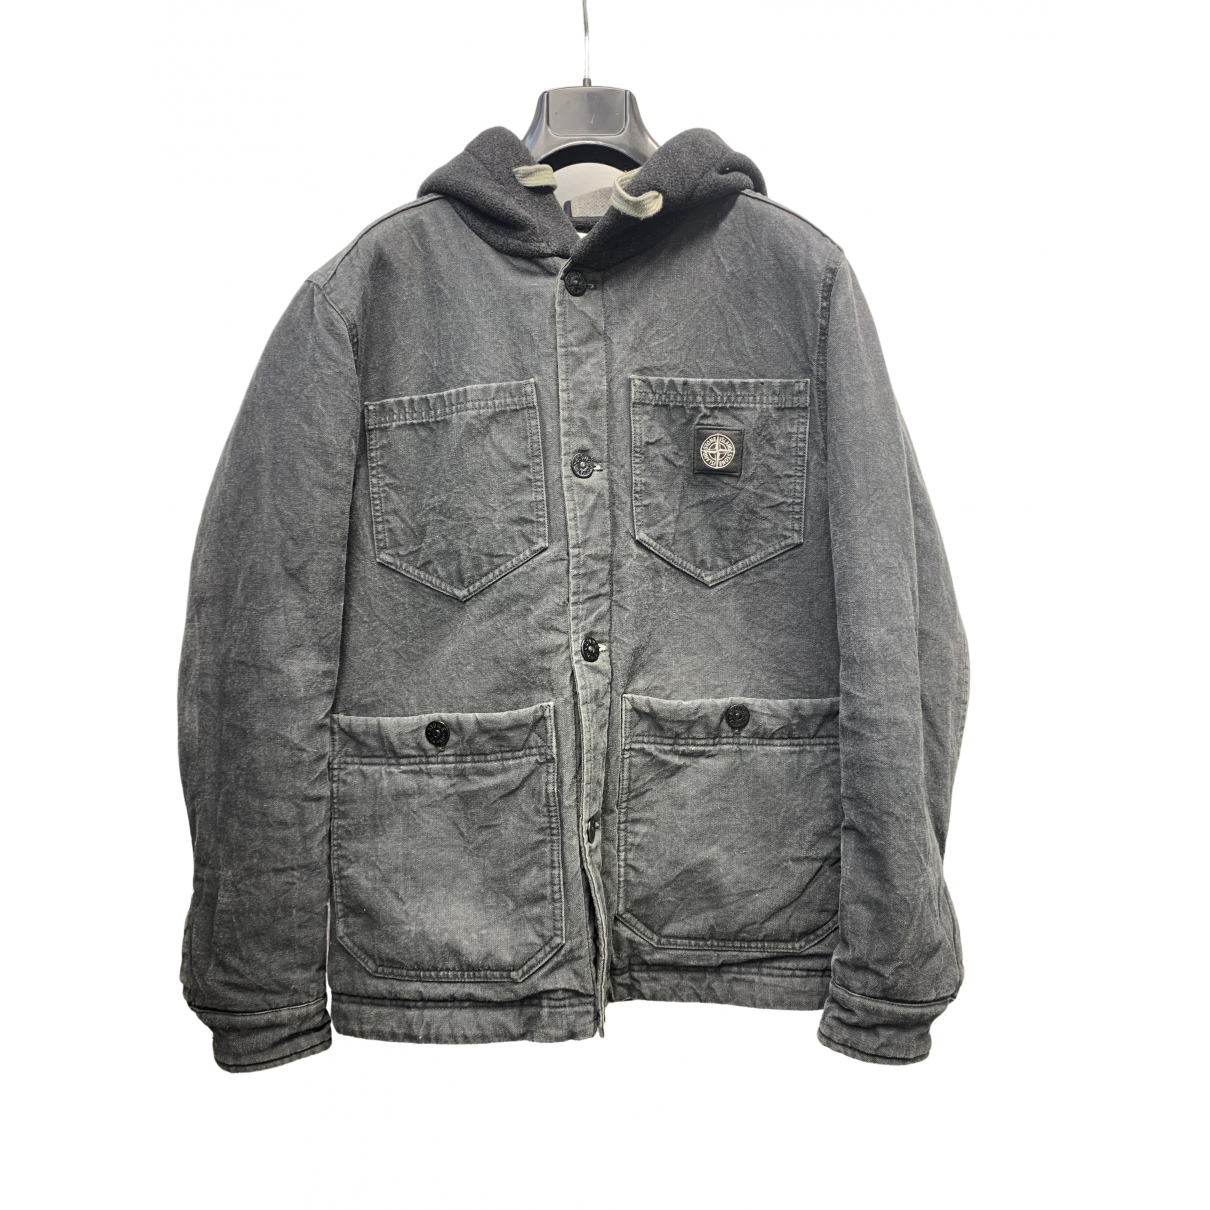 Stone Island \N Grey Cotton jacket  for Men S International